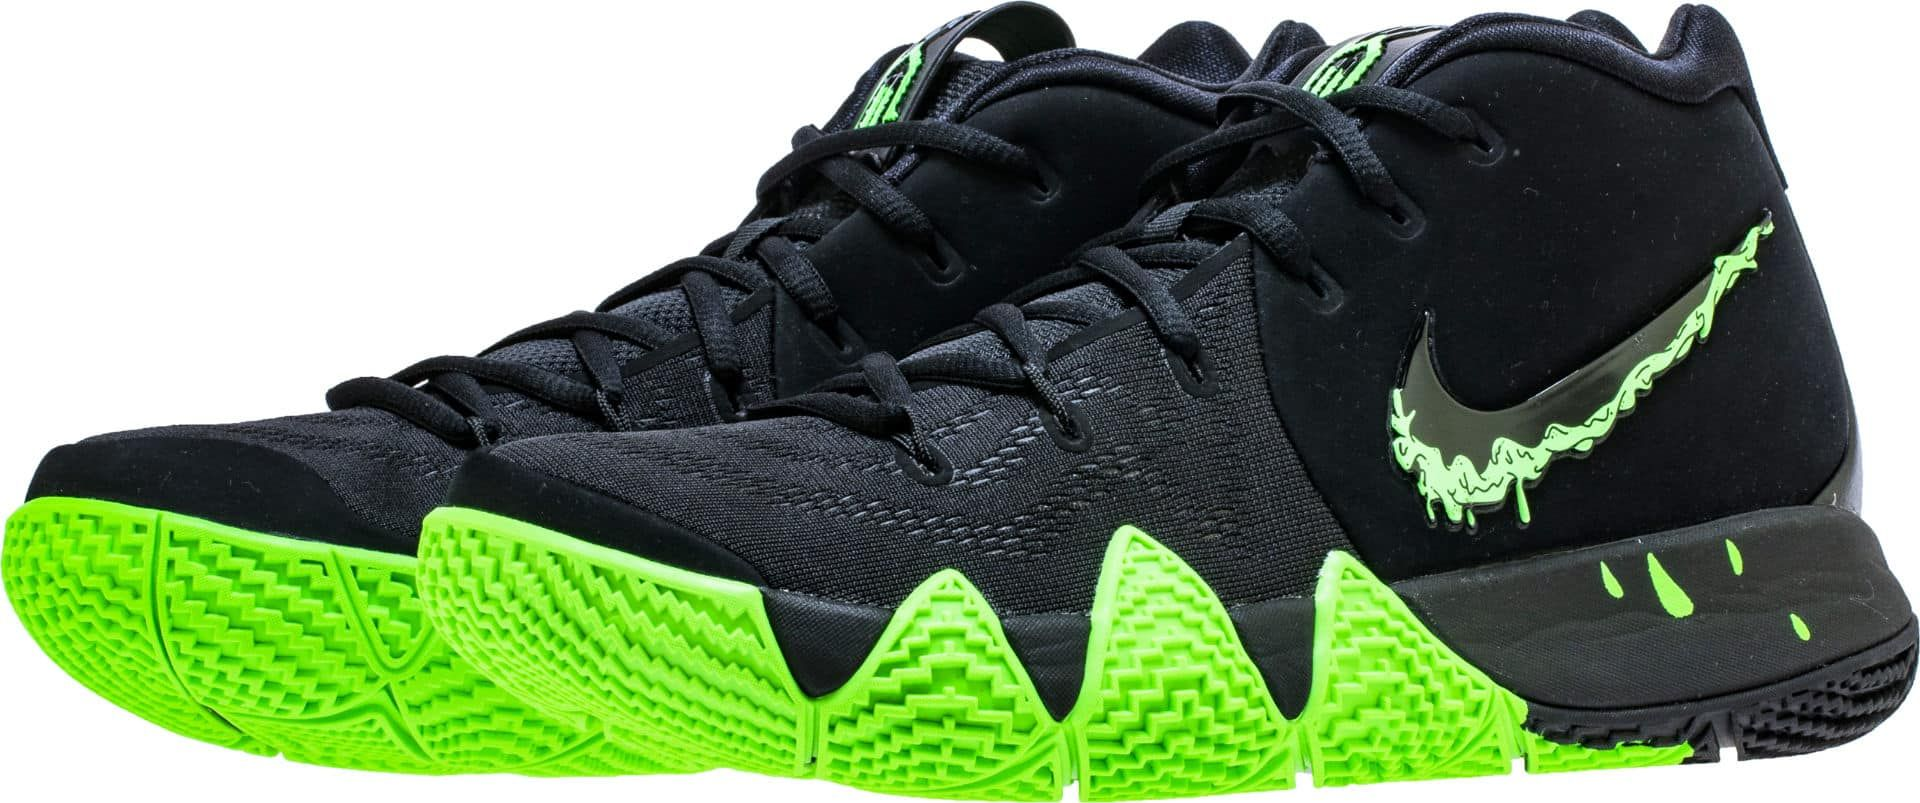 hot sale online dfd04 8b4a5 Nike Kyrie 4 Black Rage Green Halloween